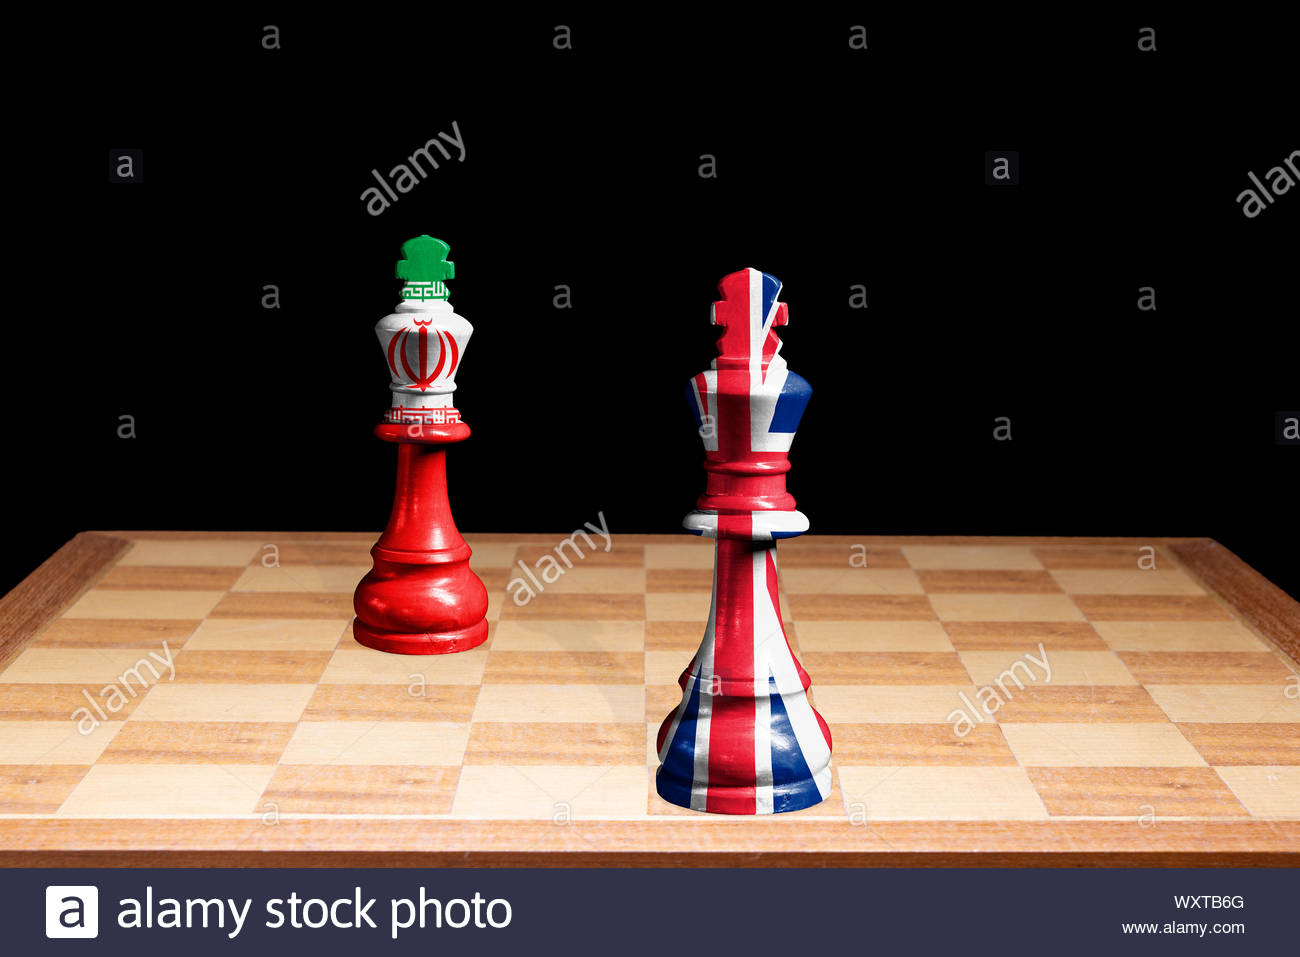 Conceptual image of United Kingdom (Union Jack) and the Islamic Republic of Iran flags as two chess pieces facing each other, England, UK Stock Photo